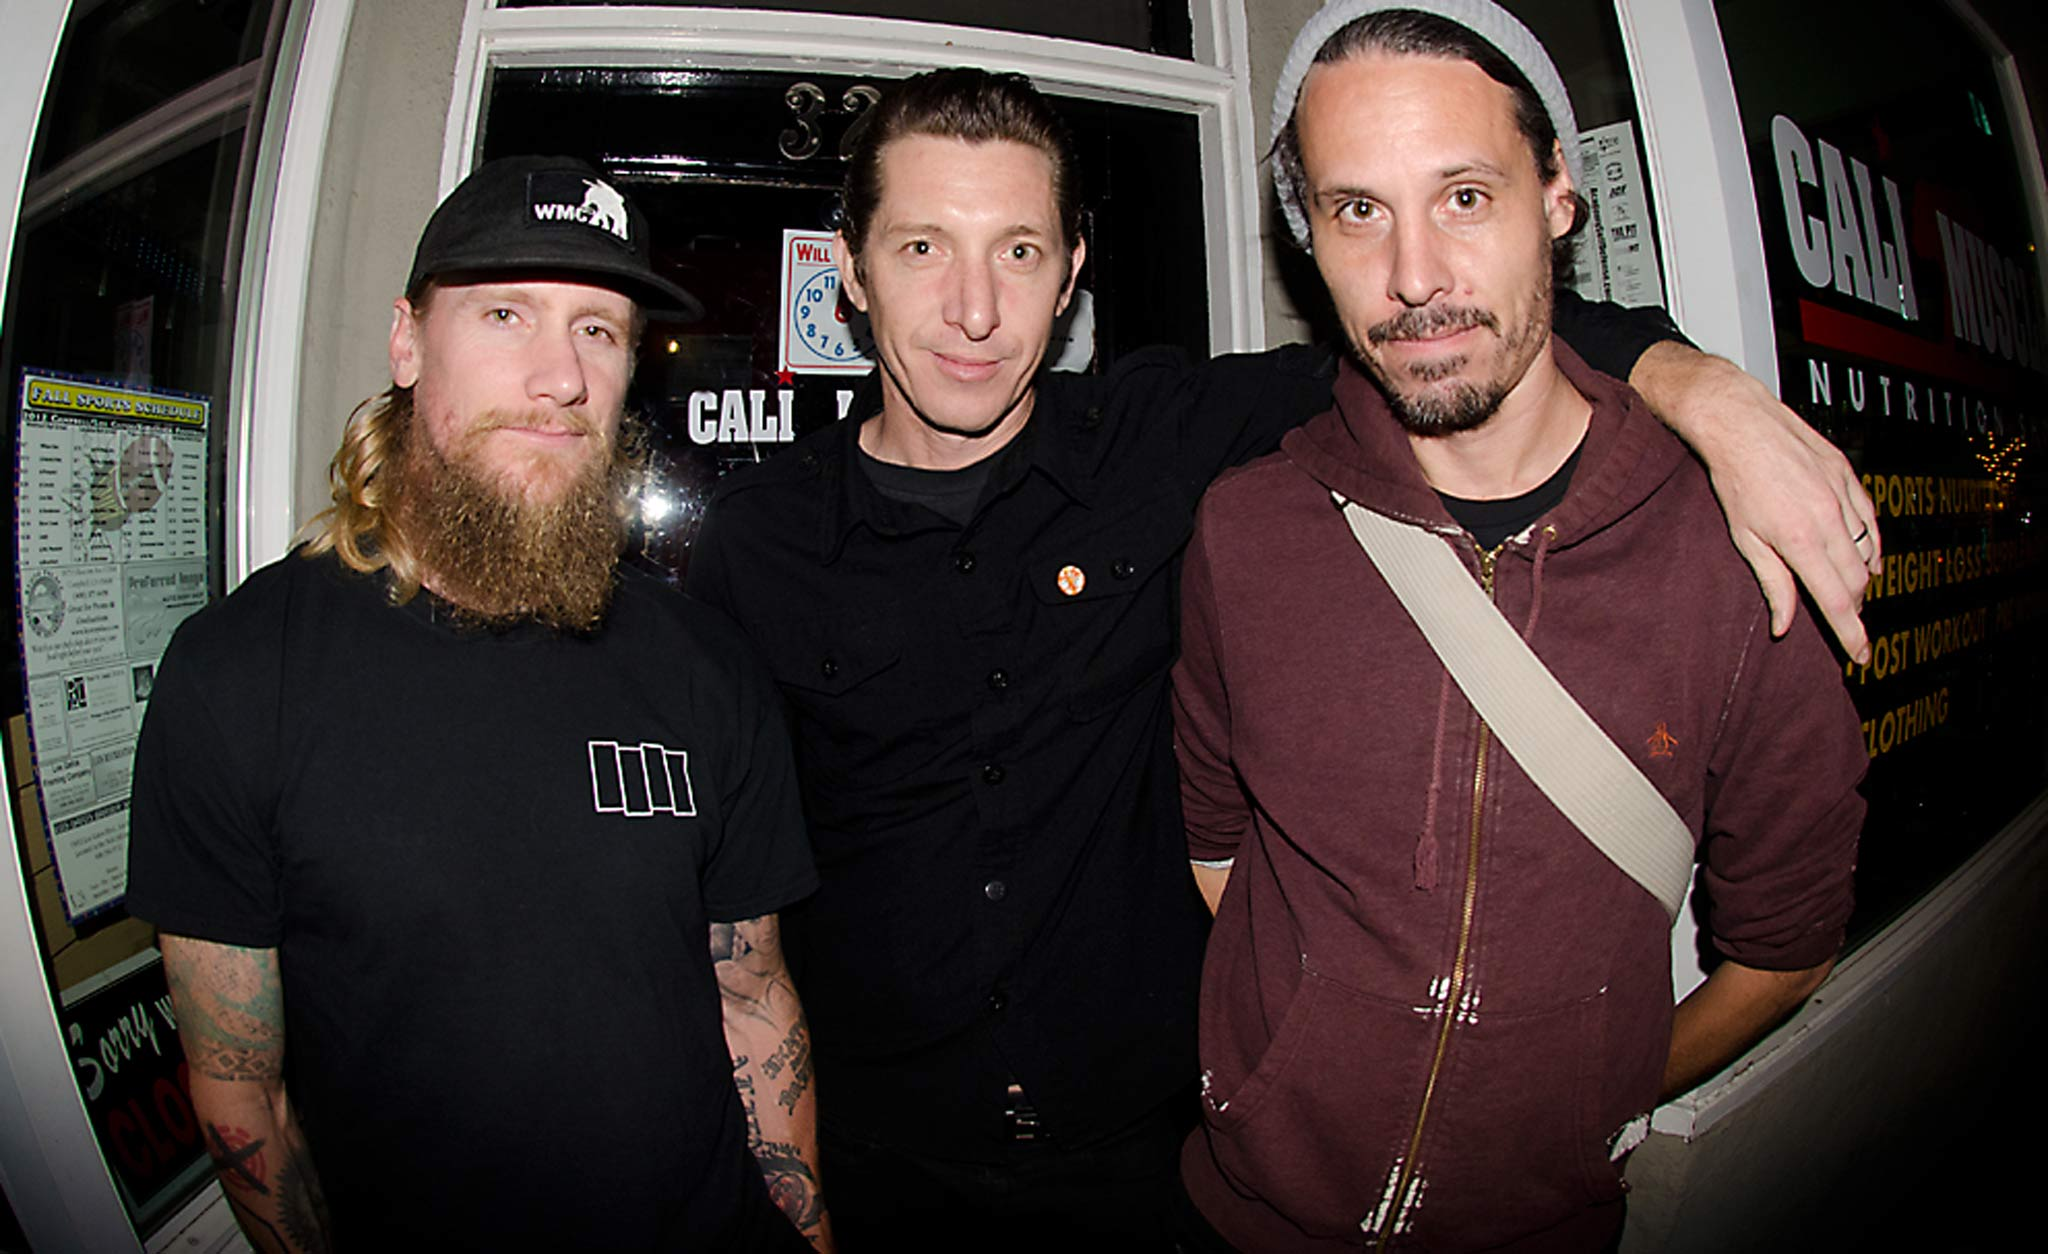 Mike Vallely, Jason Adams, and Myself at a event in San Jose, 2012.